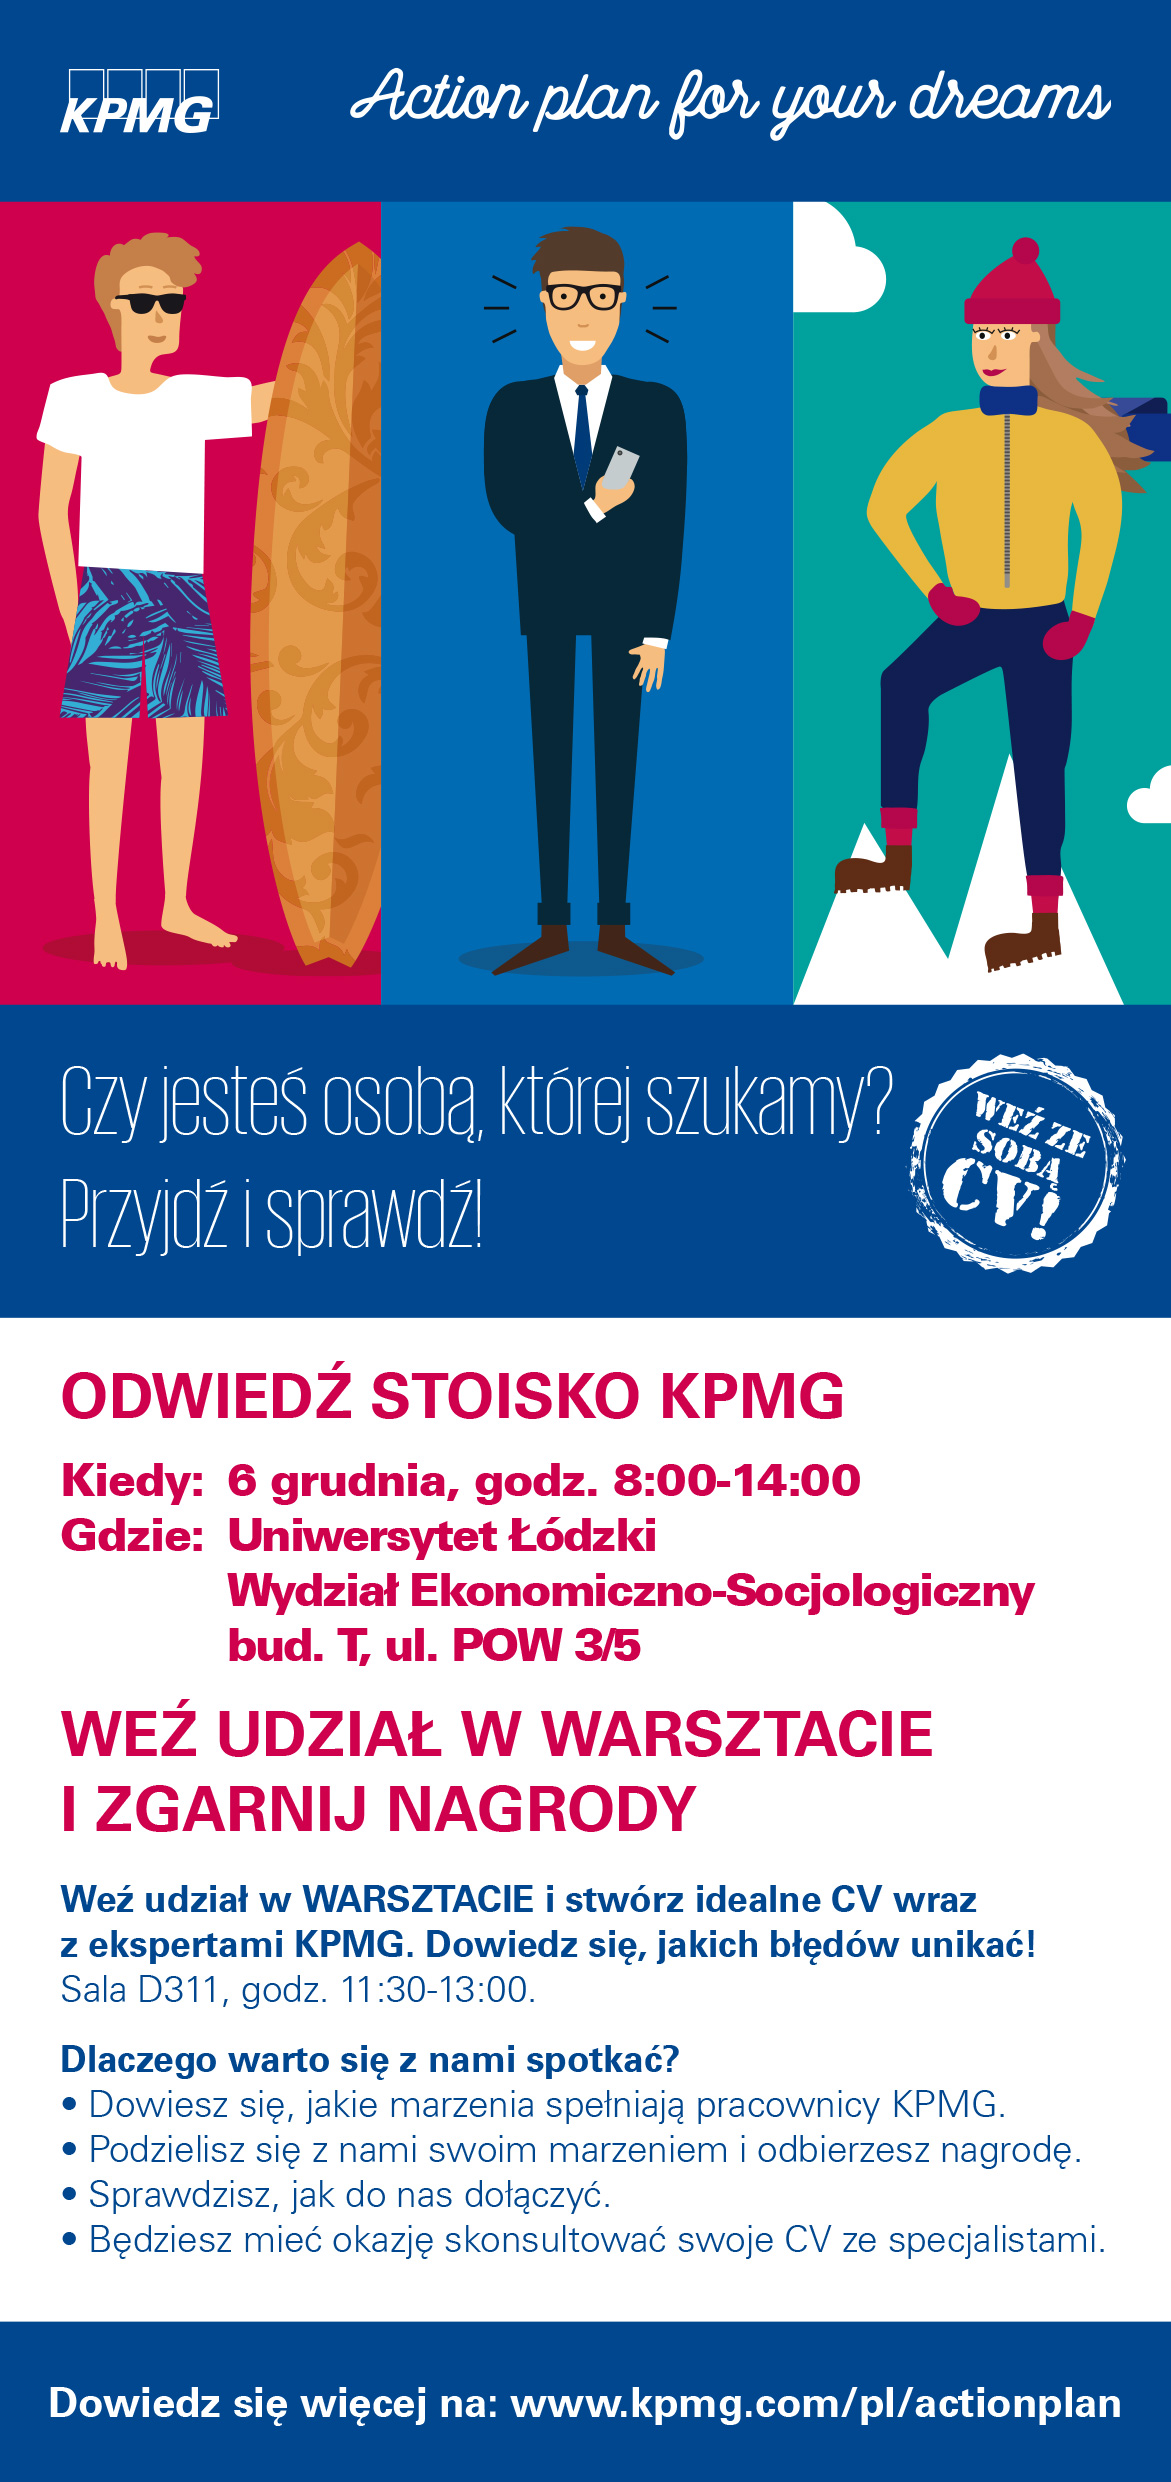 kpmg_plakat_action-plan-for-your-dream_lodz